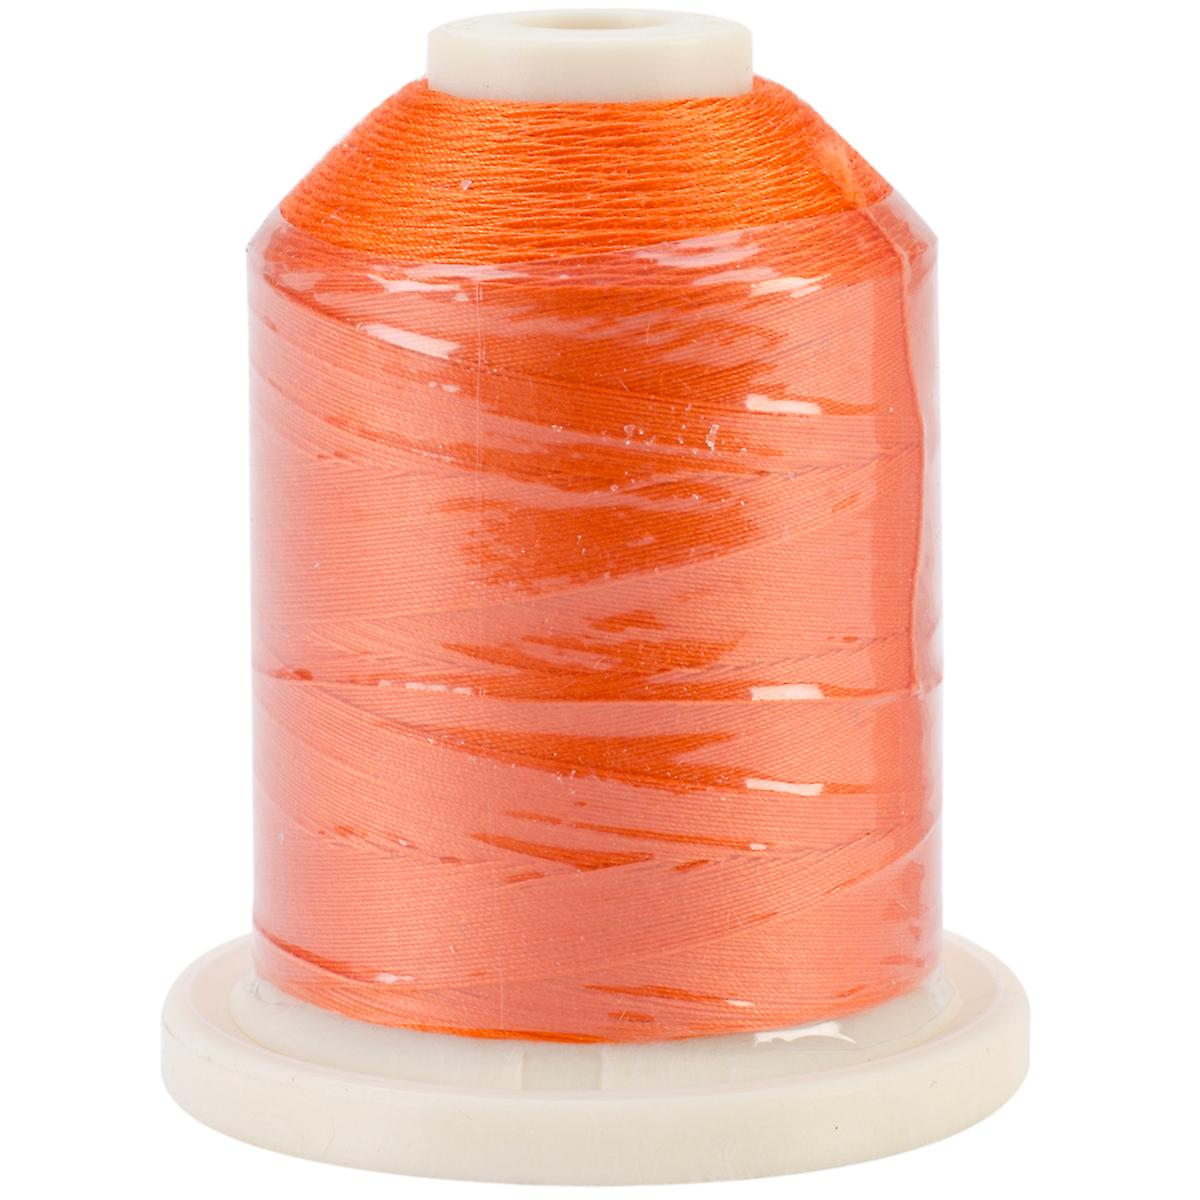 Cotton Solid Colors 700 Yards Tangerine 40 Sn309